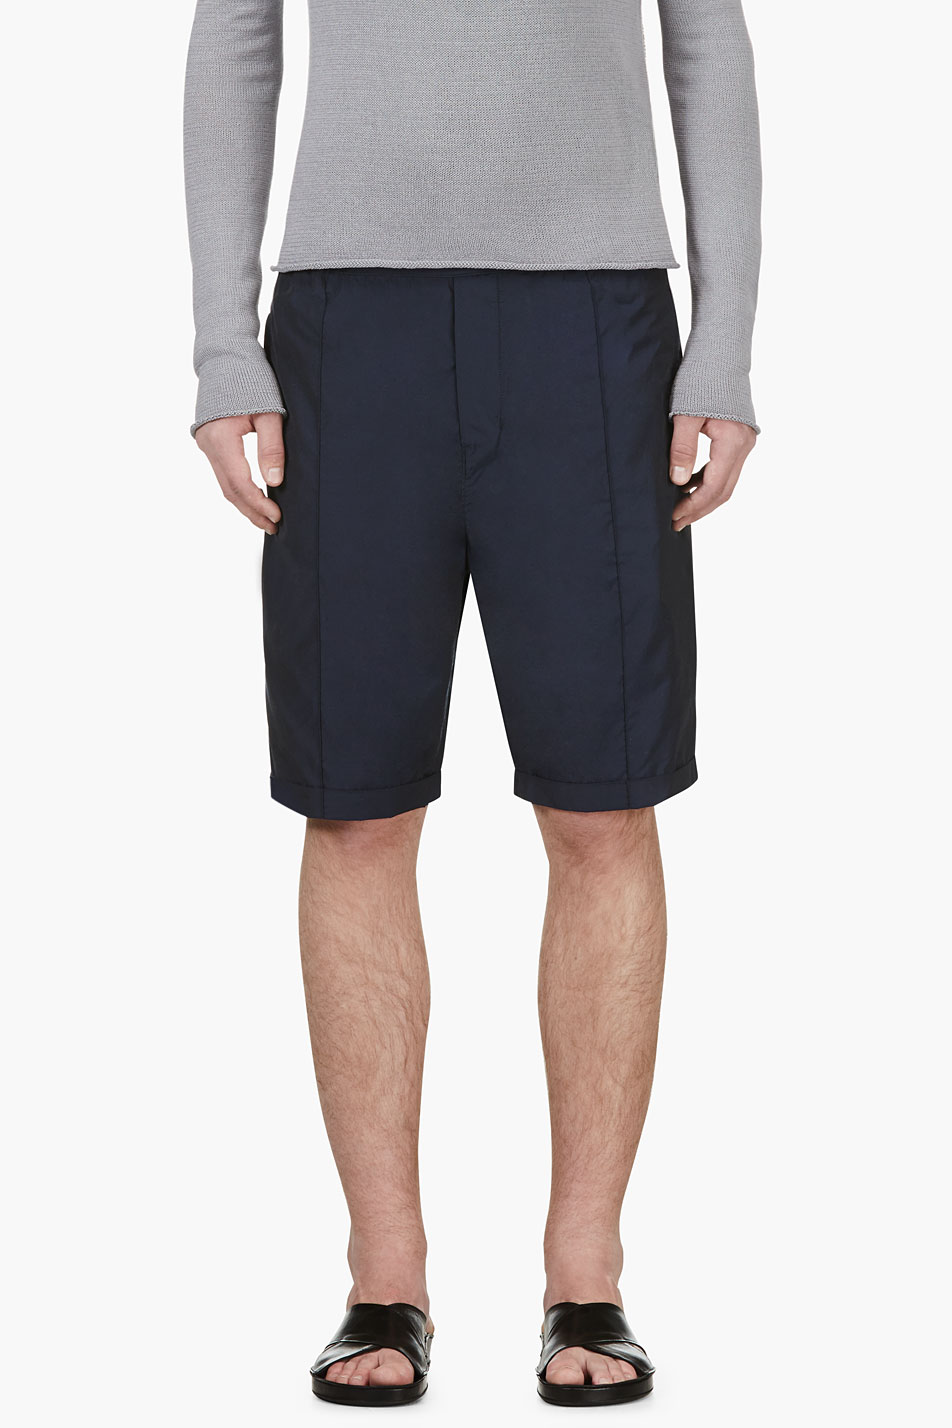 costume national navy nylon shorts